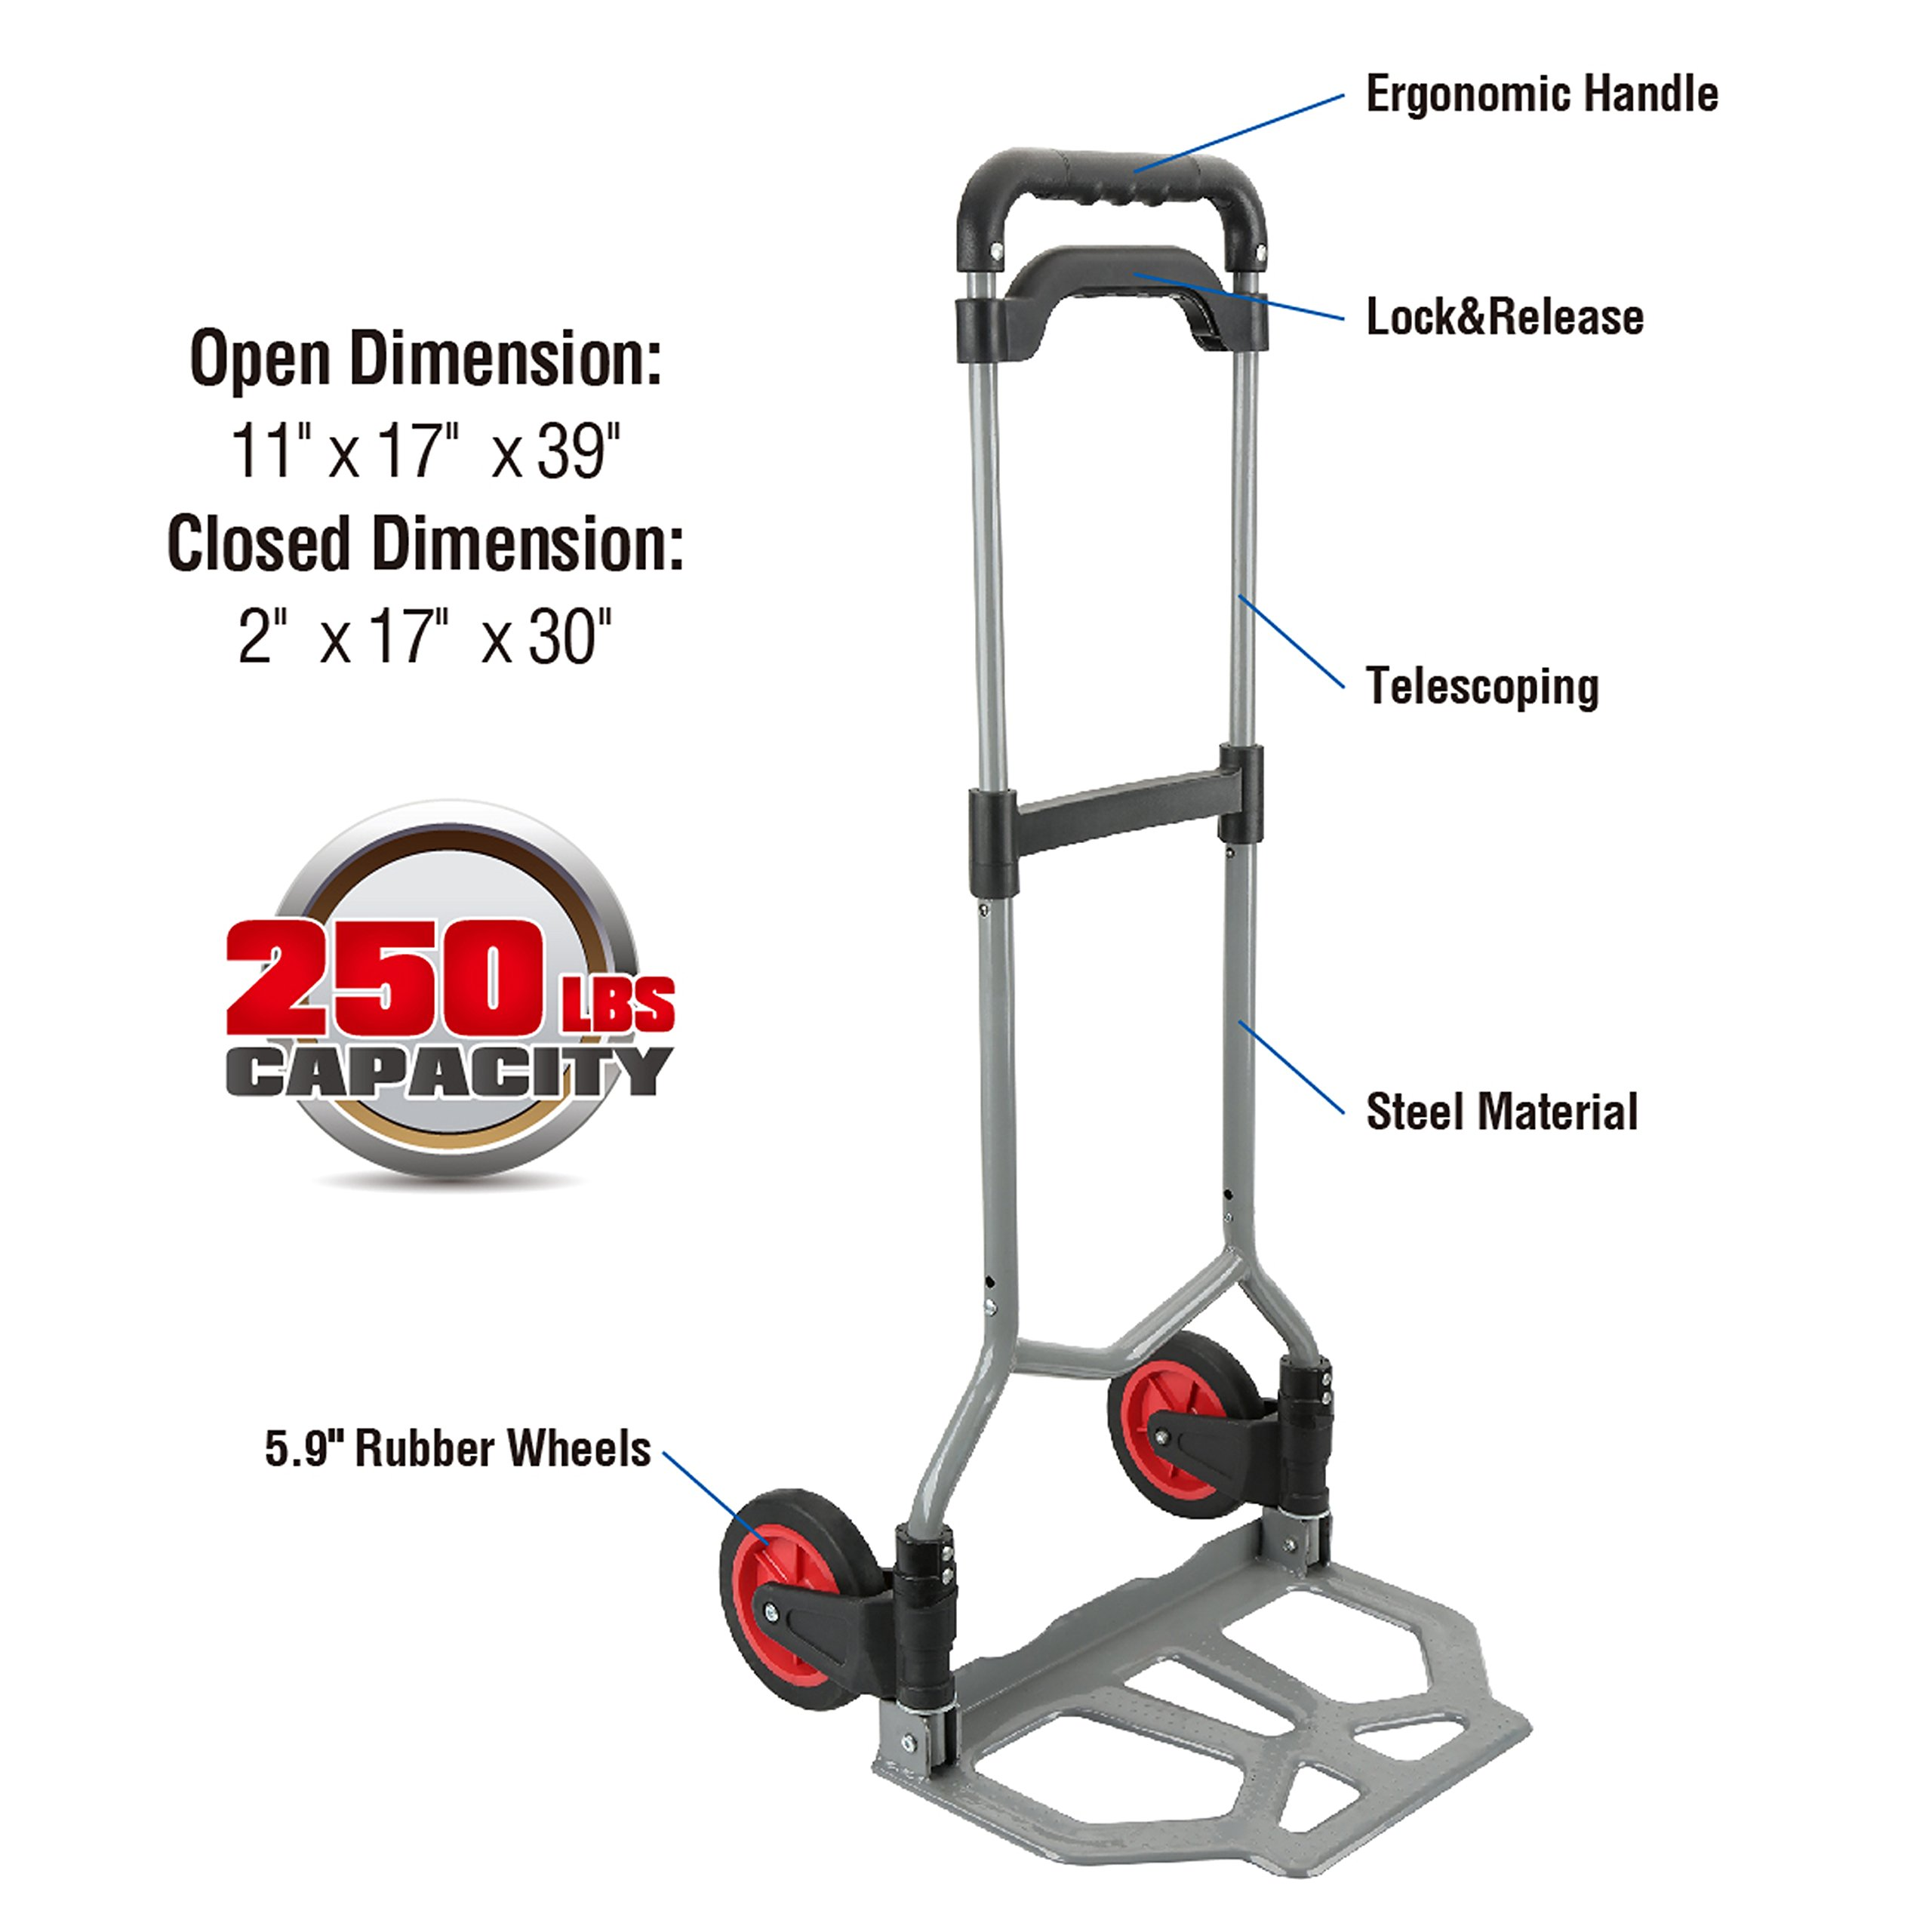 Pack-N-Roll 83-298-917 Folding Hand Truck Dolly, 250 lbs Capacity